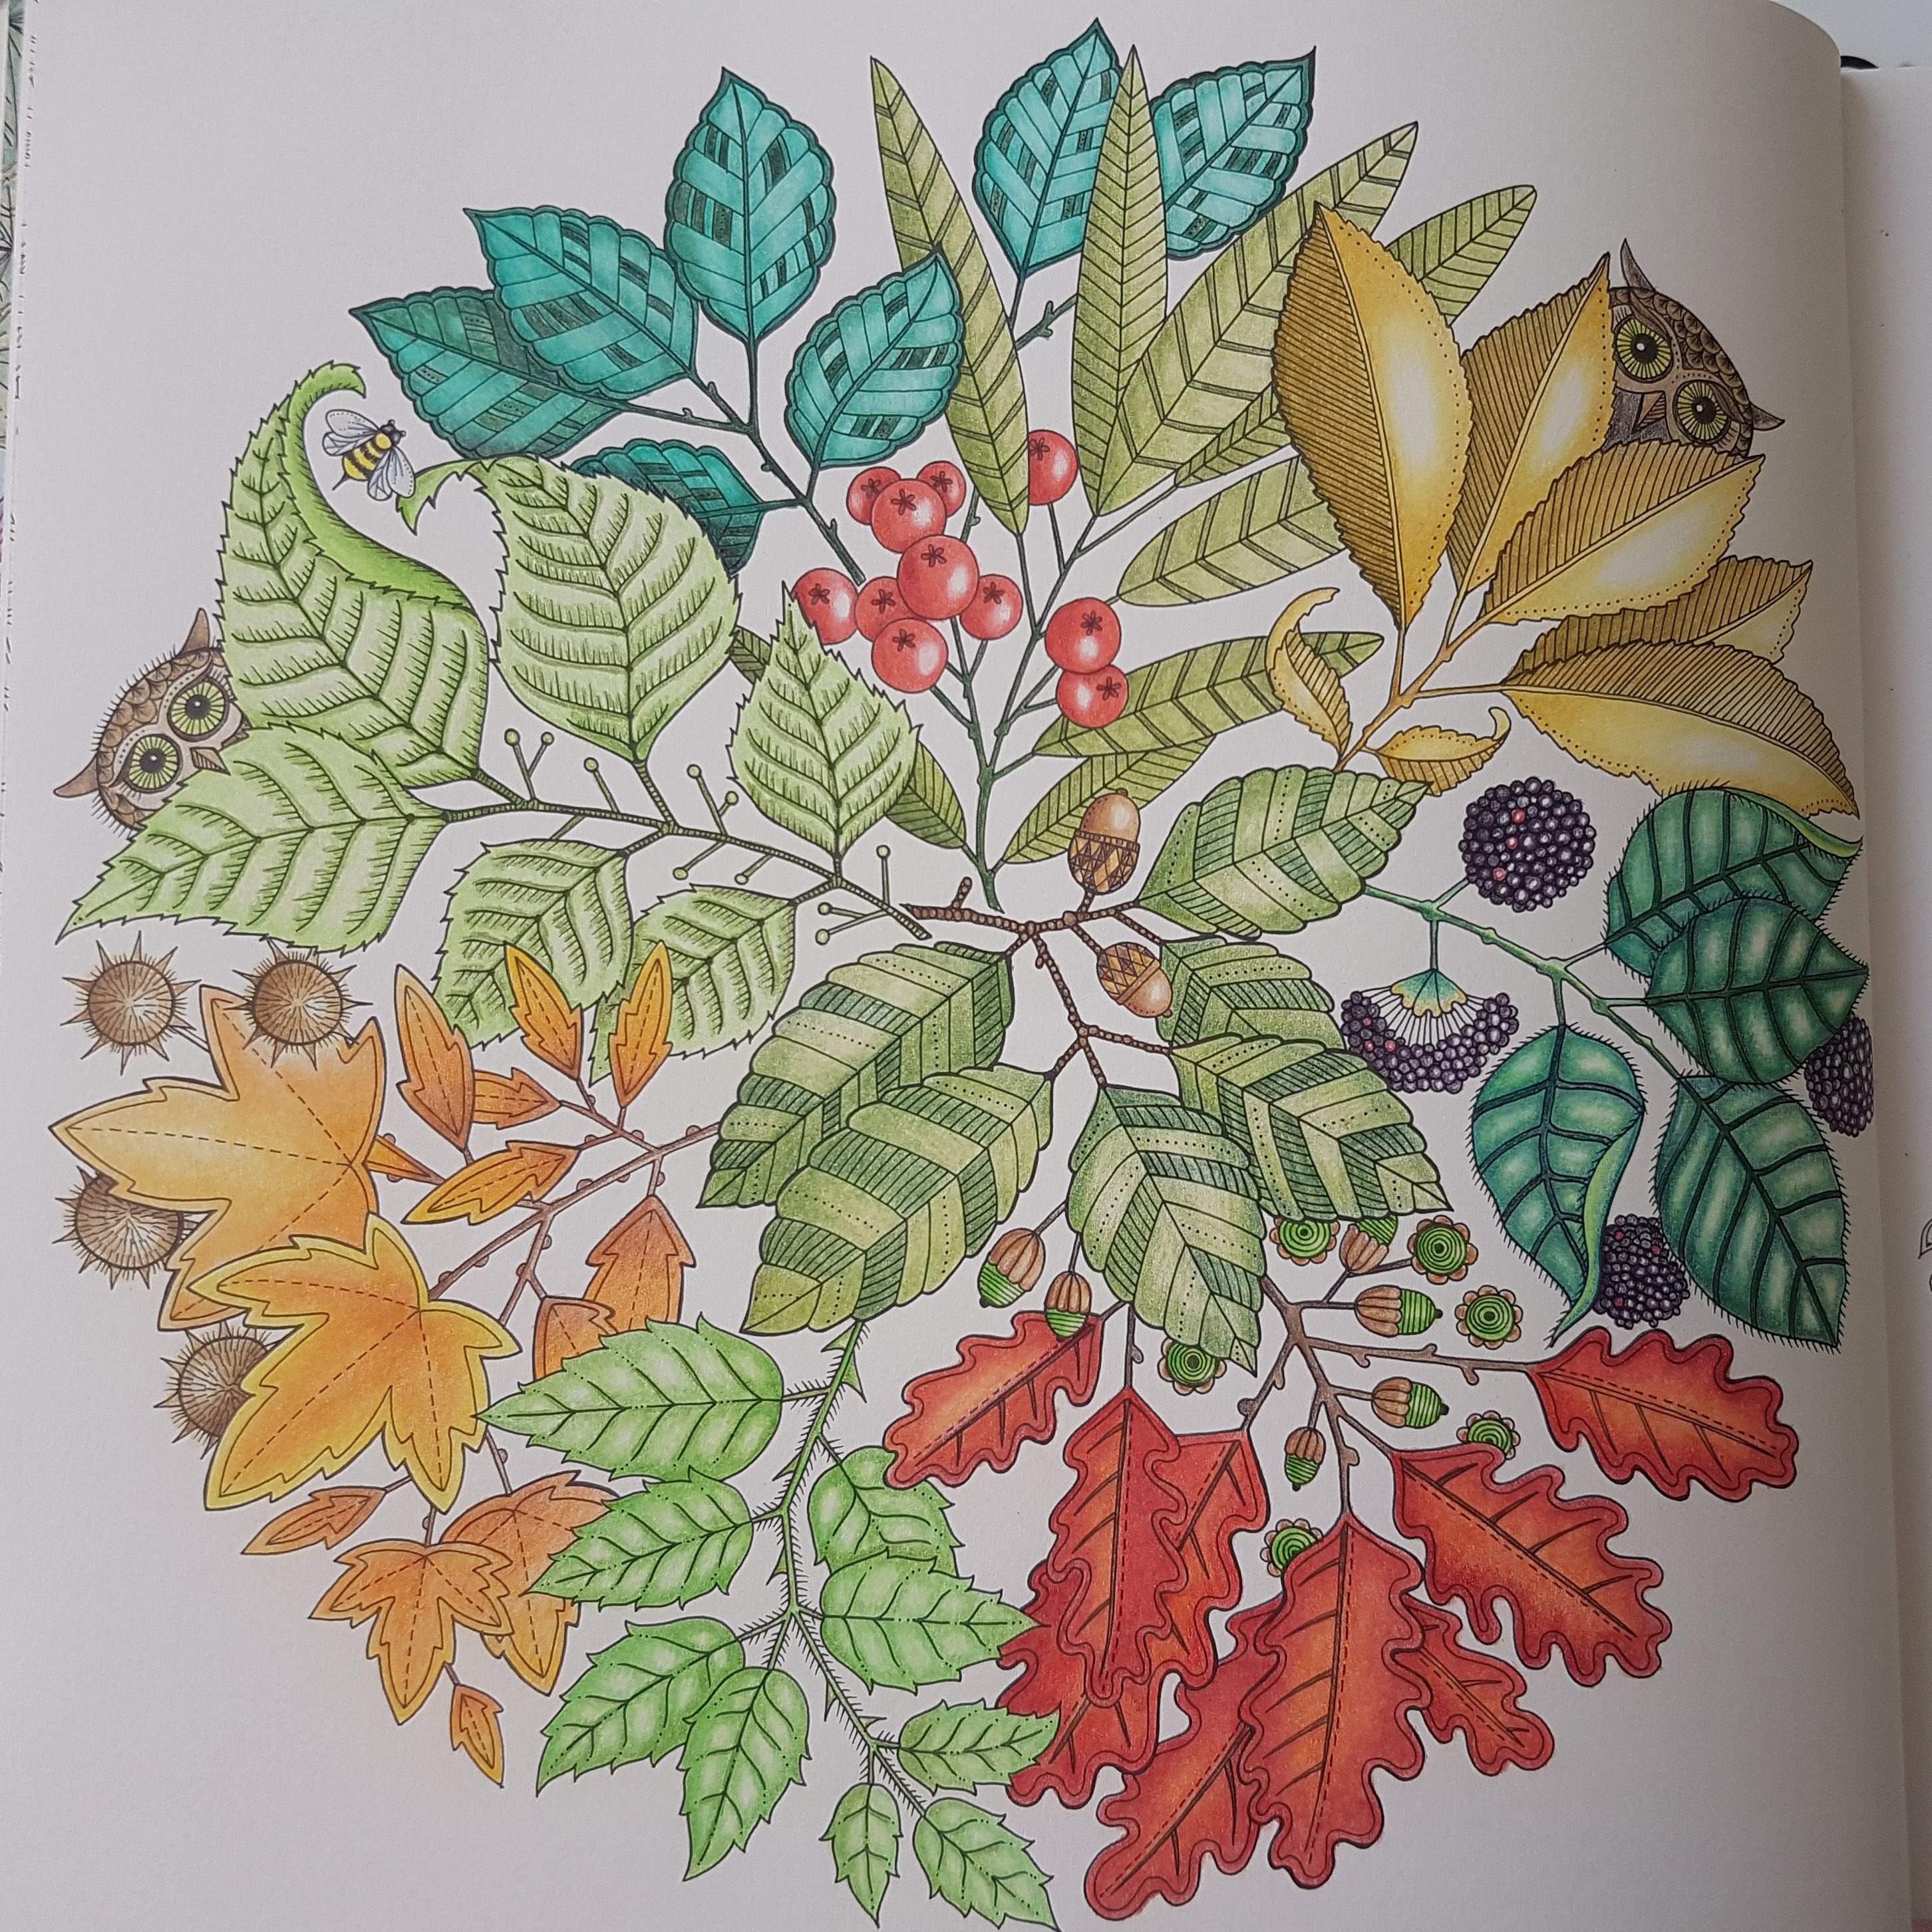 Image is from the Secret garden colouring book. I used Polychromos ...